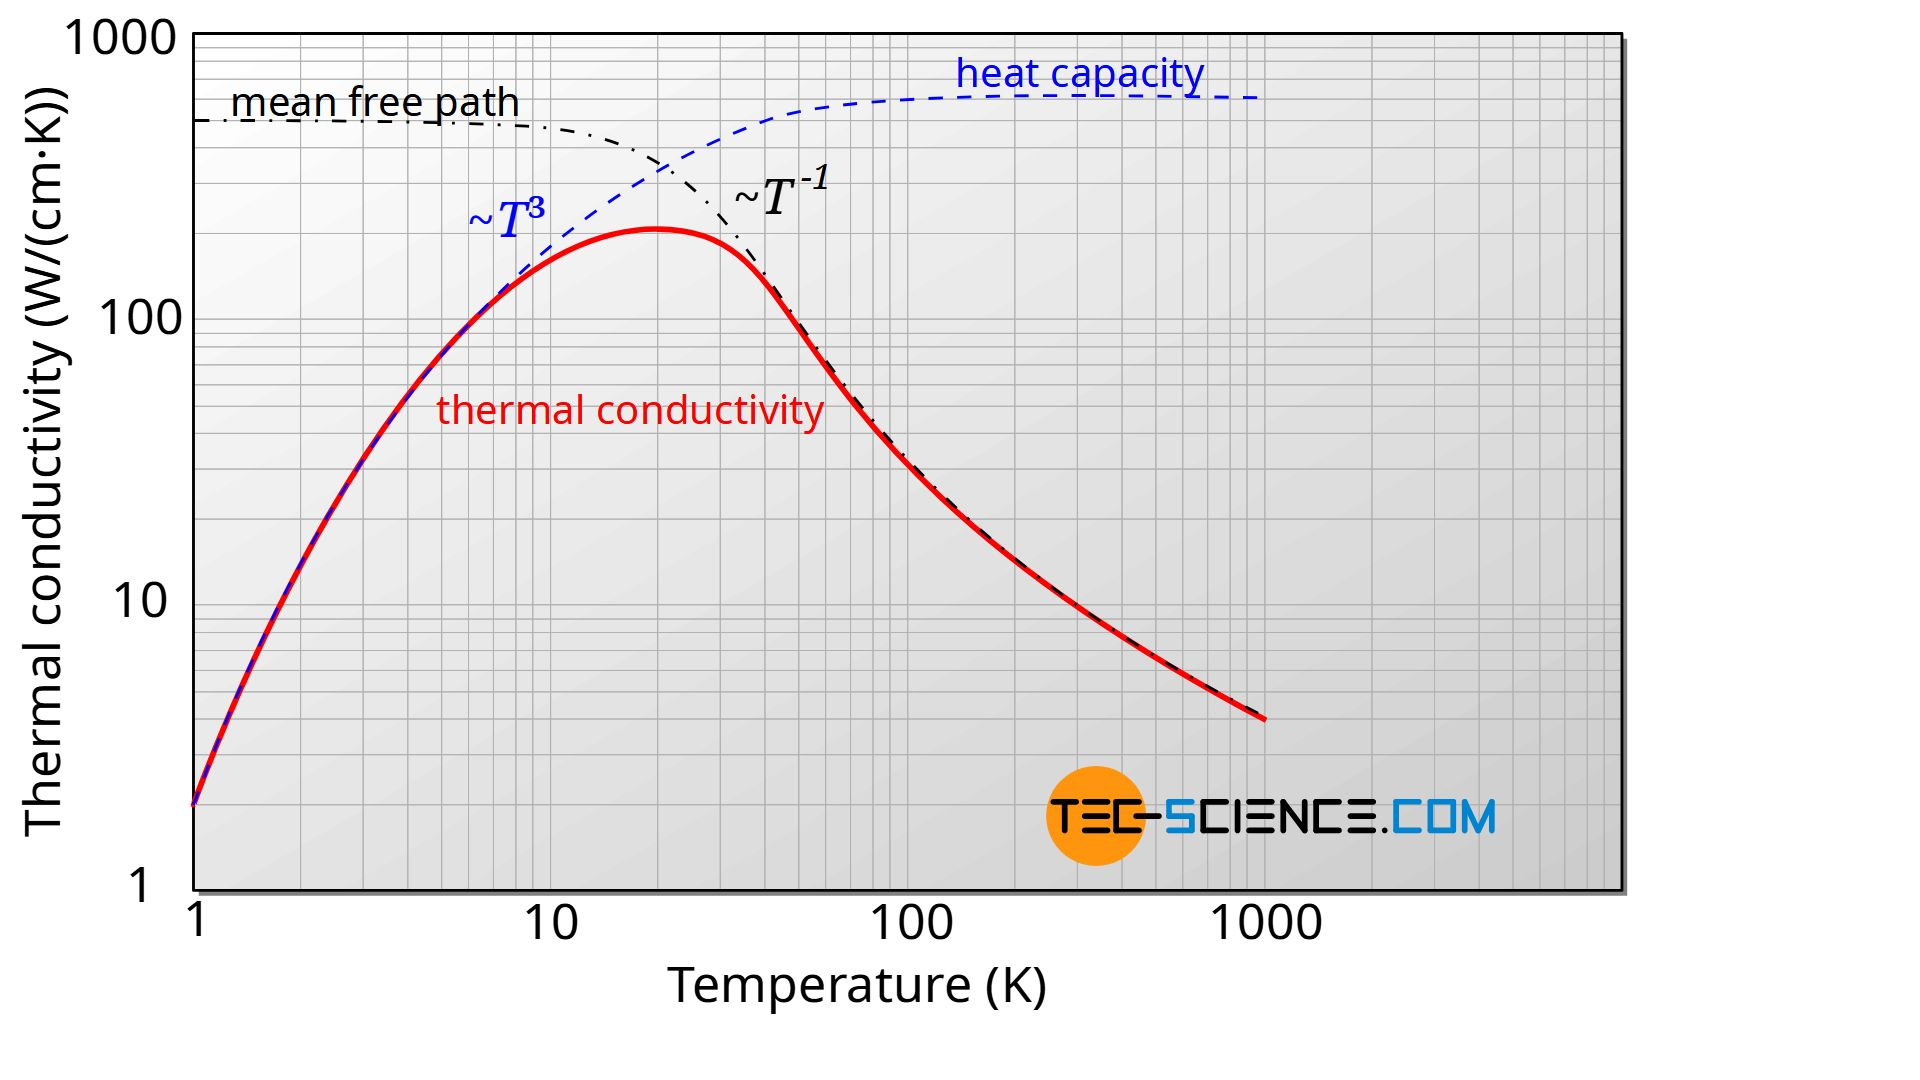 Schematic course of mean free path, heat capacity and thermal conductivity as a function of temperature